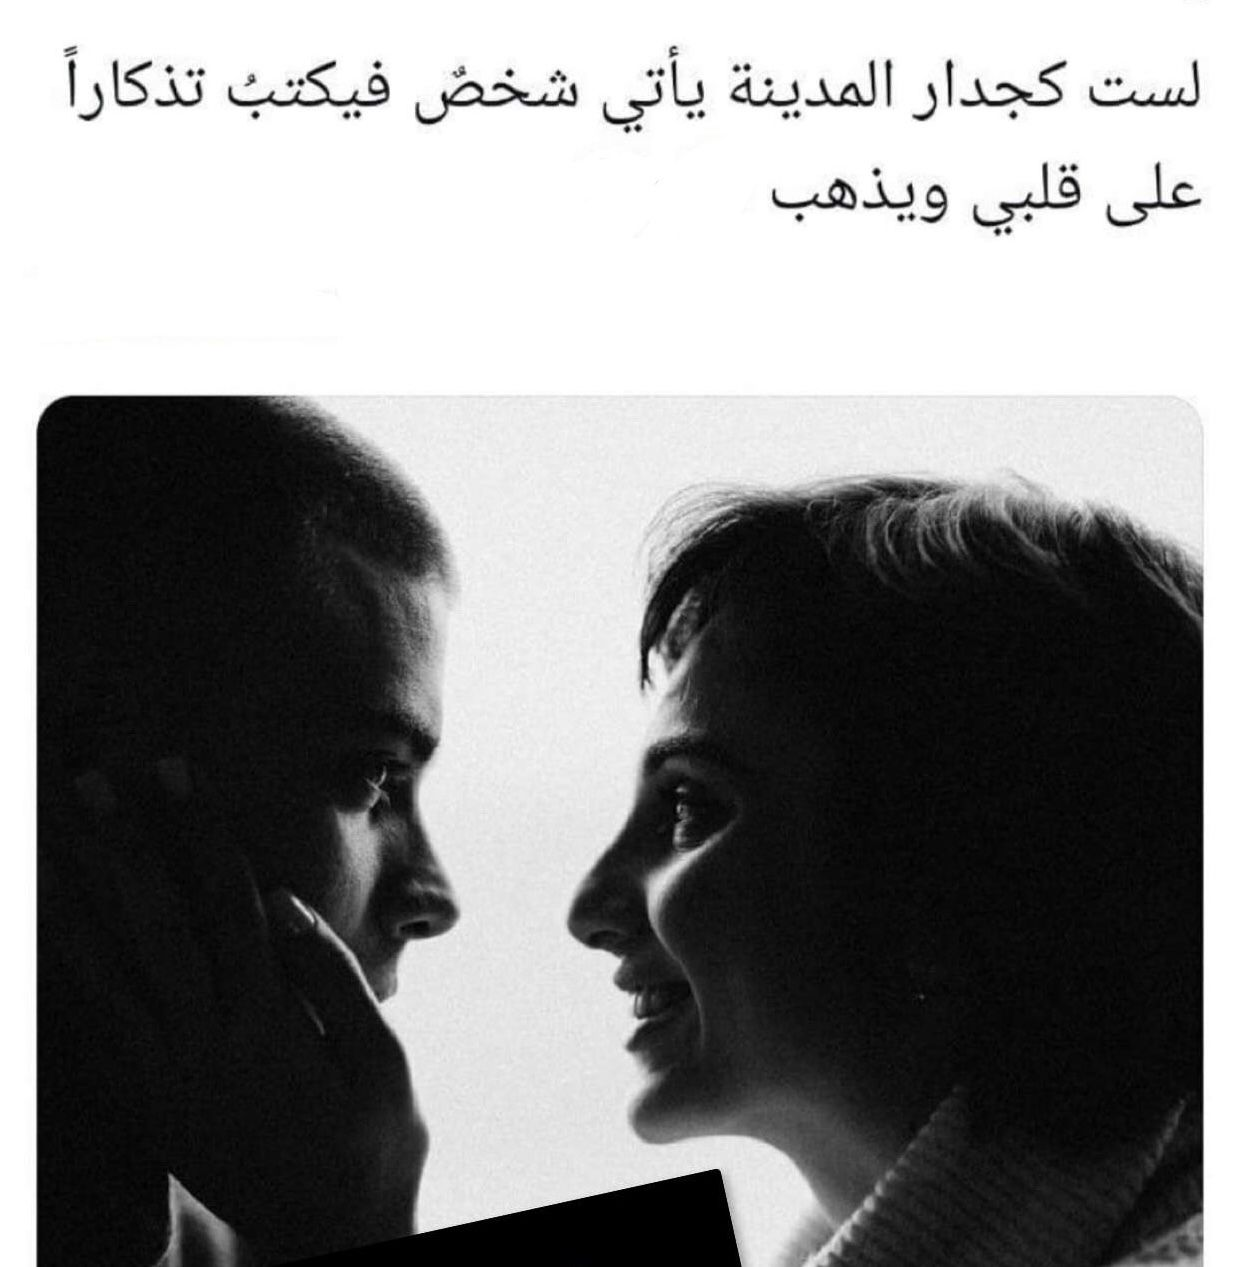 Pin By Samar Anan On مشاعر In 2021 Beautiful Words Poster Movies